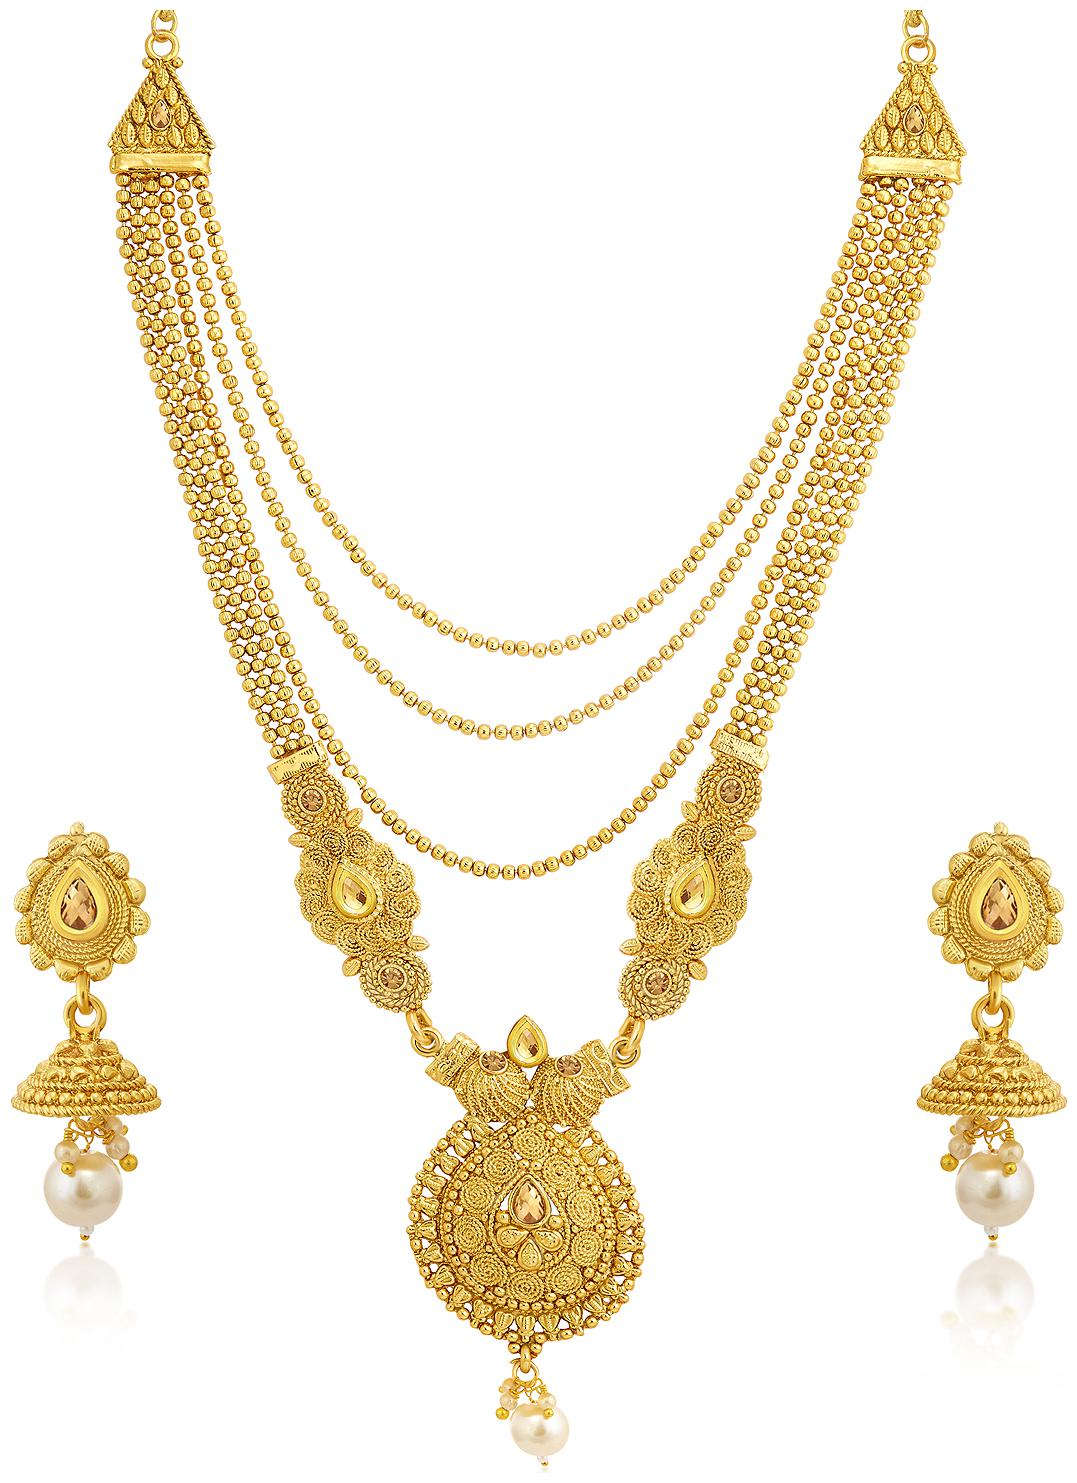 Pearl Necklace - Buy Pearl Necklace for Women Online at Paytm Mall